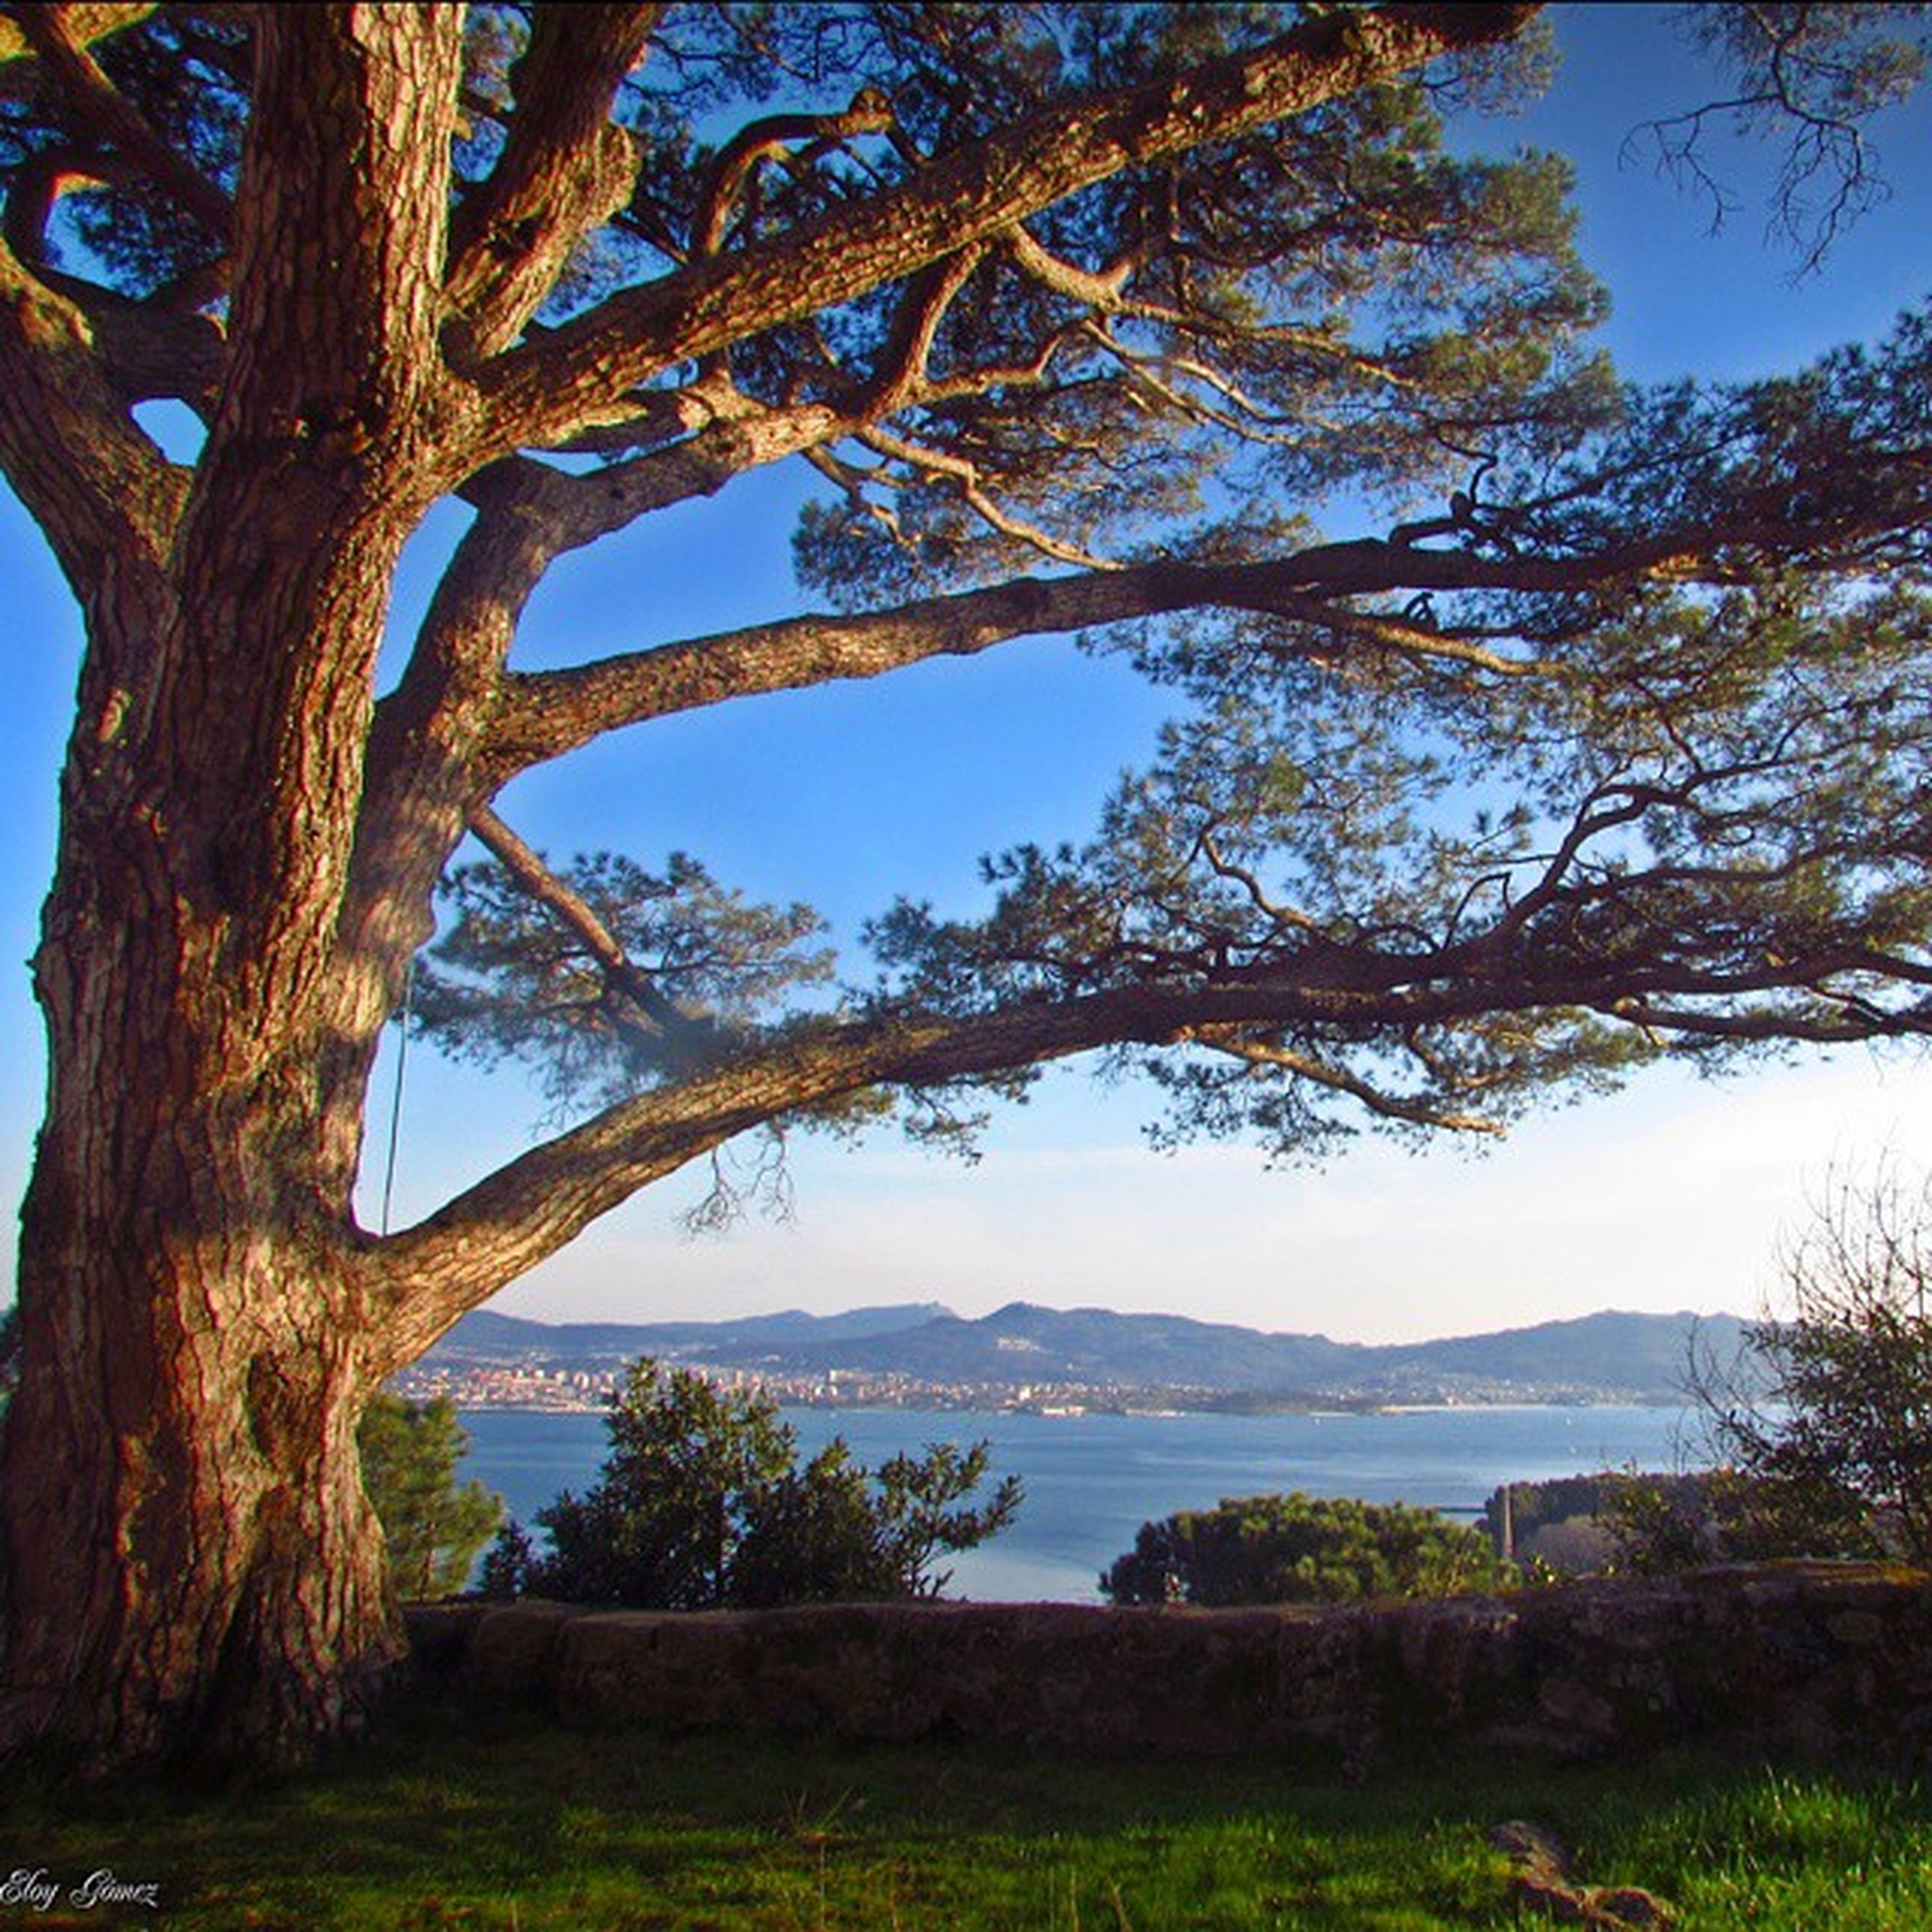 tree, tranquility, branch, tranquil scene, scenics, nature, beauty in nature, tree trunk, growth, water, sky, lake, landscape, bare tree, clear sky, idyllic, non-urban scene, day, outdoors, no people